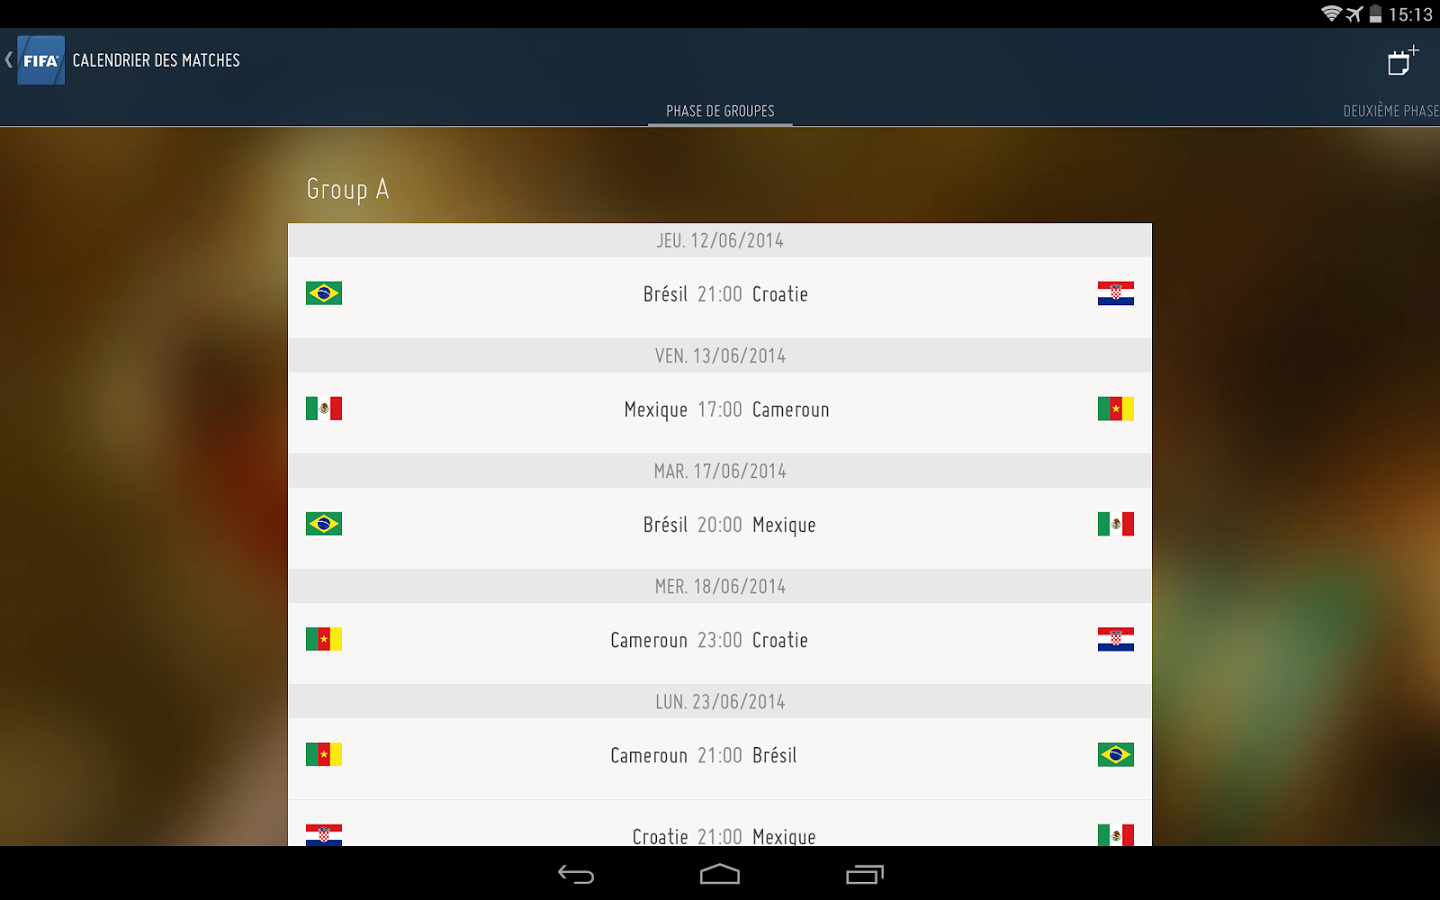 FIFA-Calendrier free apps